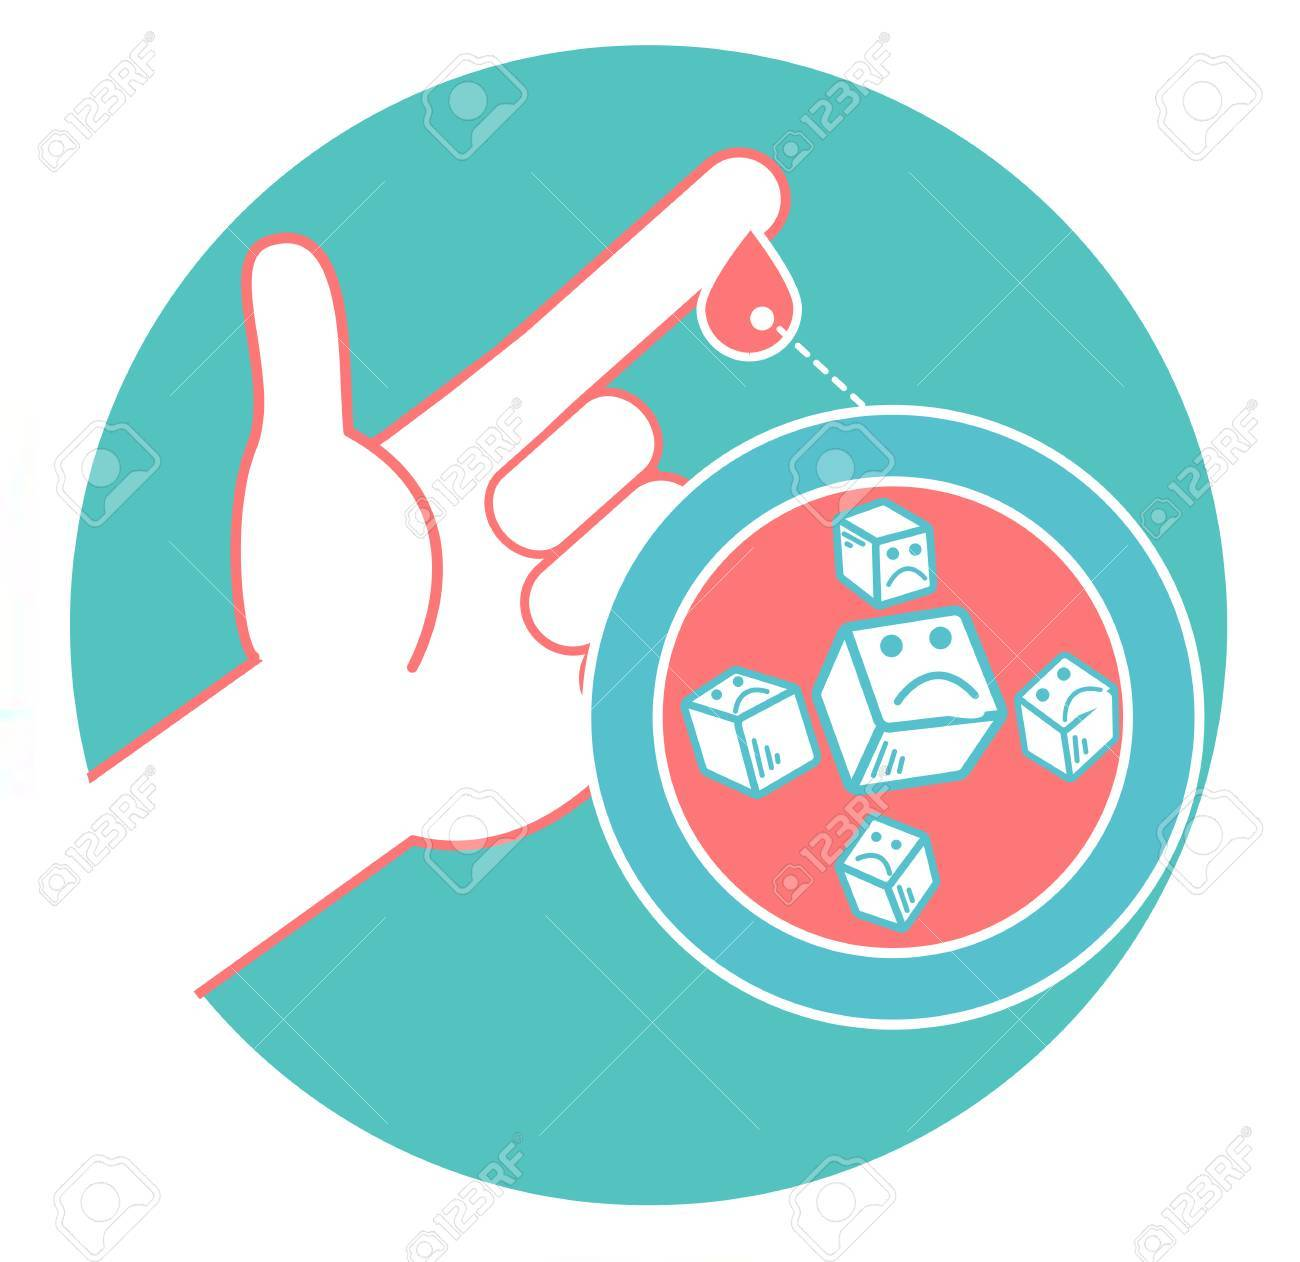 Concept of diabetes in the form of measuring blood sugar from a drop of blood from the finger. Icon in the linear style. - 89498729